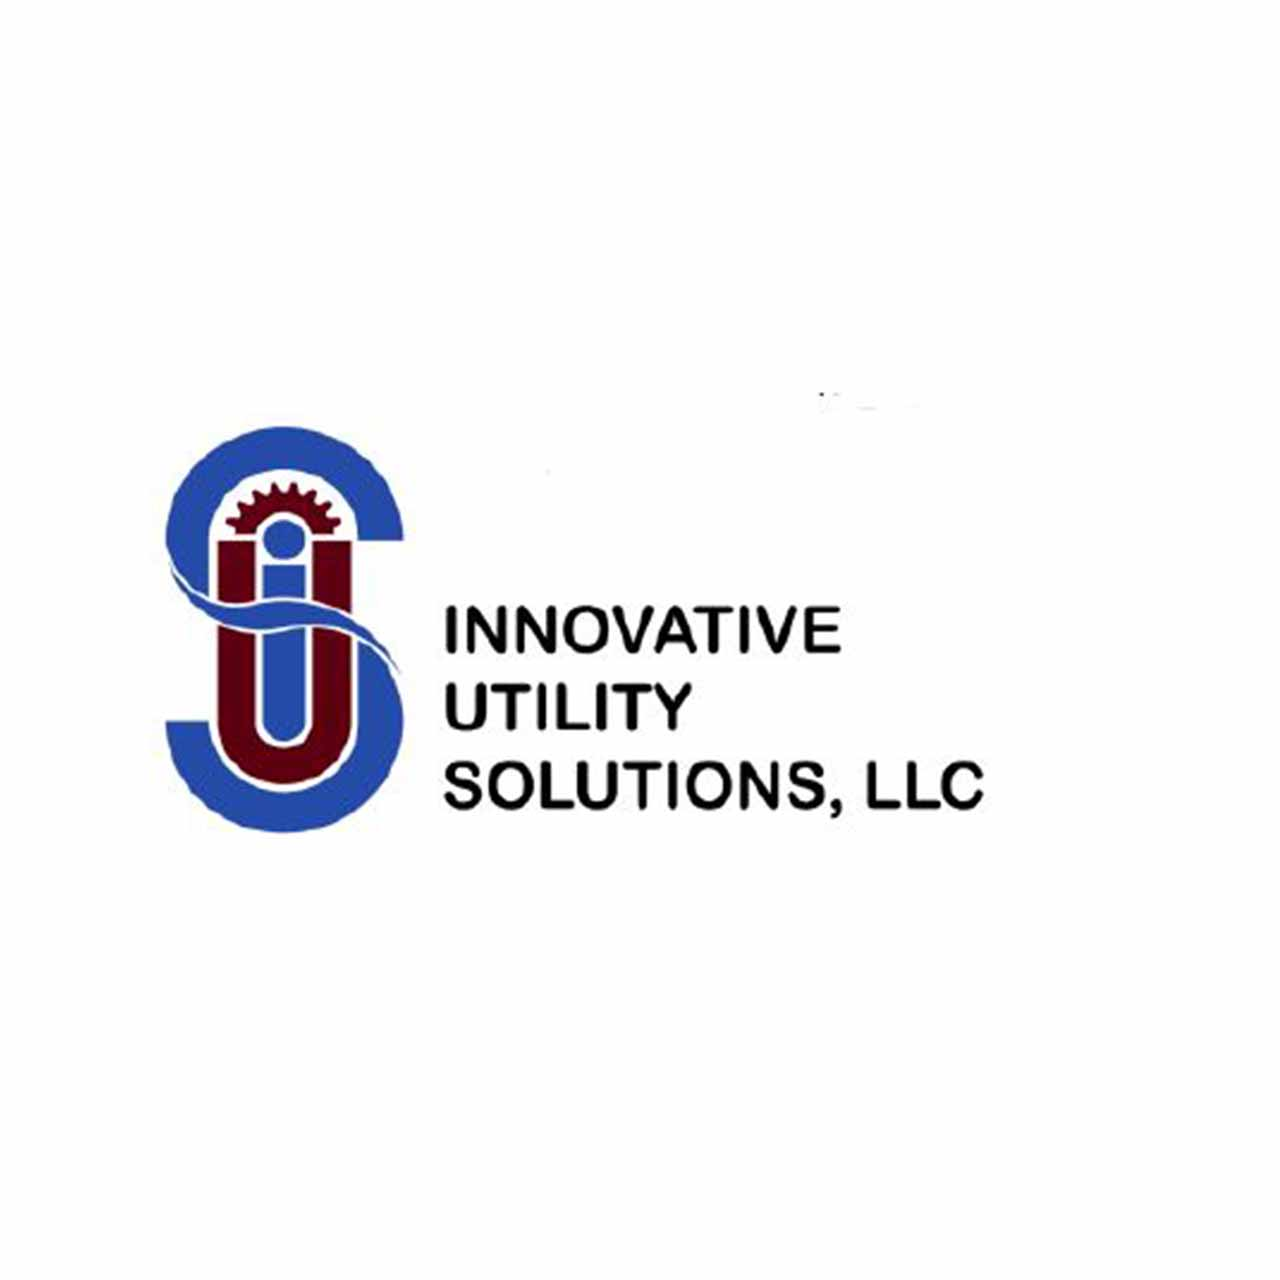 Innovative Utility Solutions